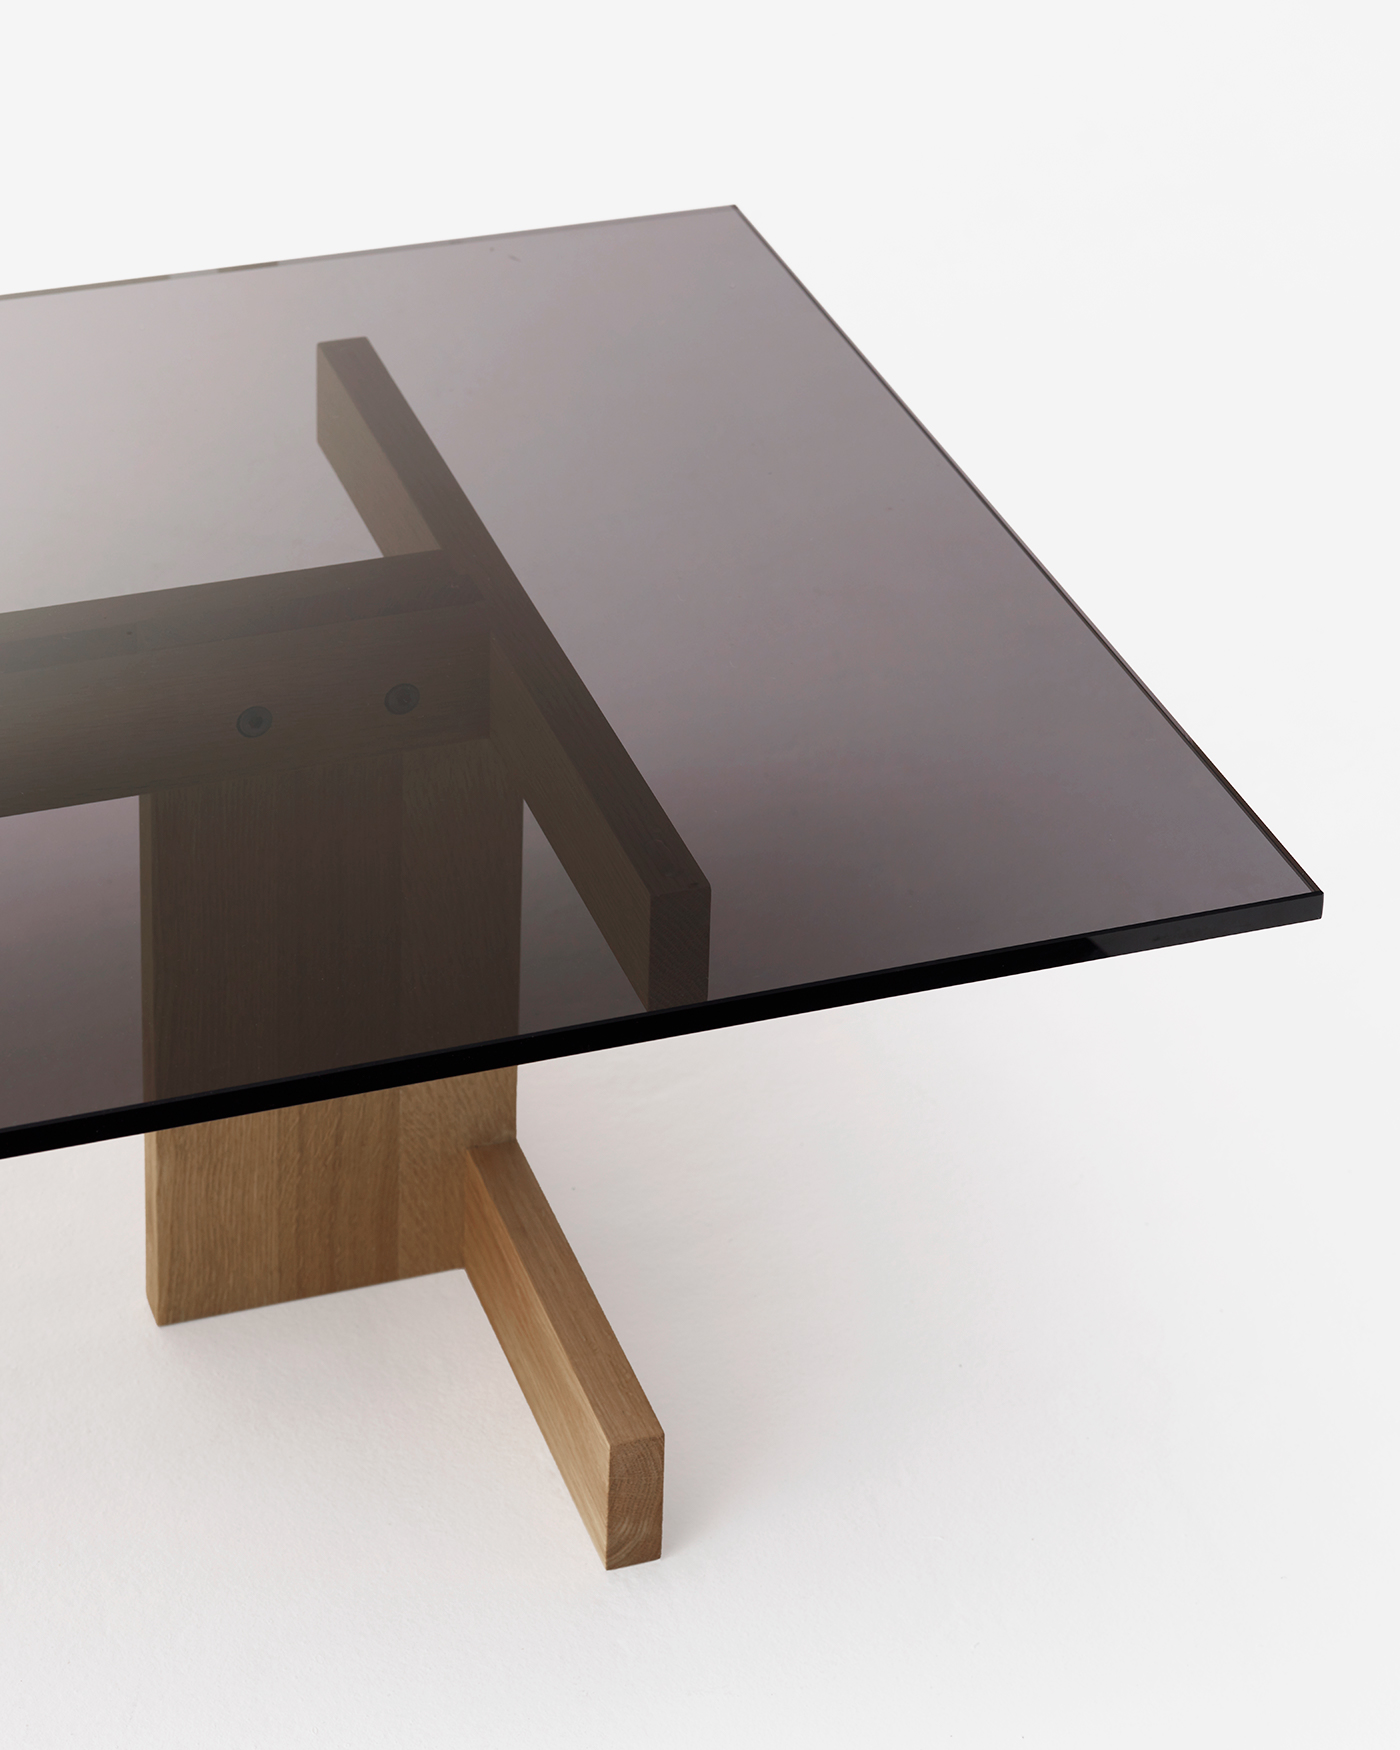 Smoked glass table top on solid geometric oak legs